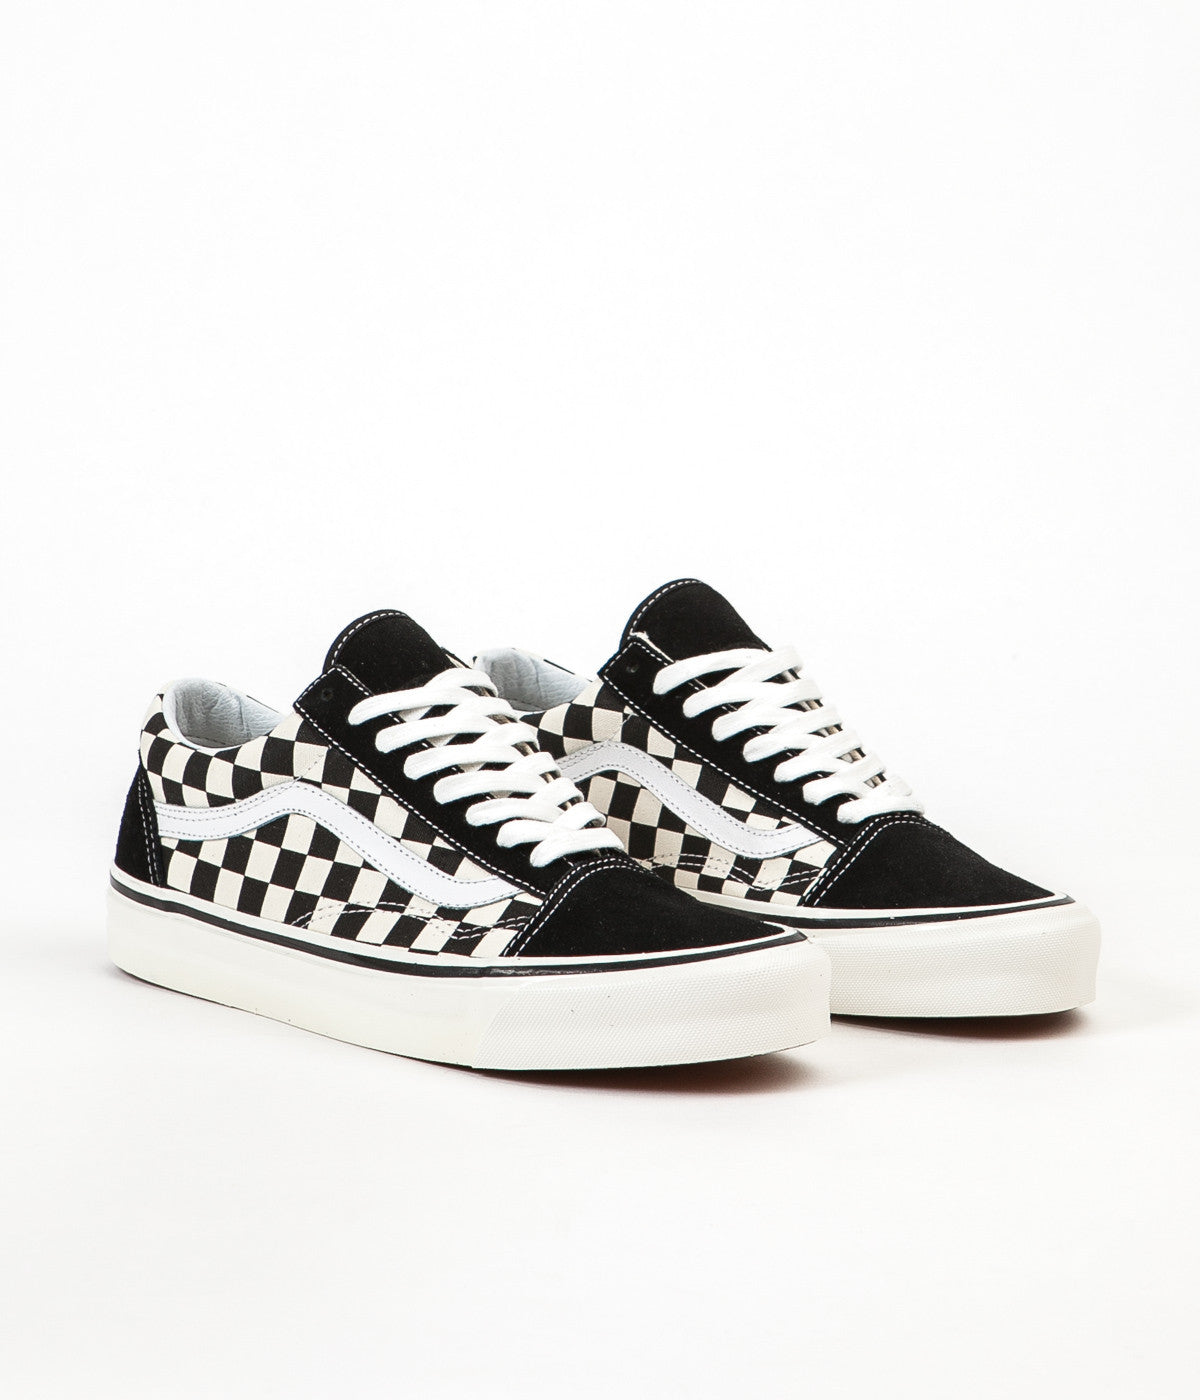 vans old skool 36 dx anaheim factory black checkerboard